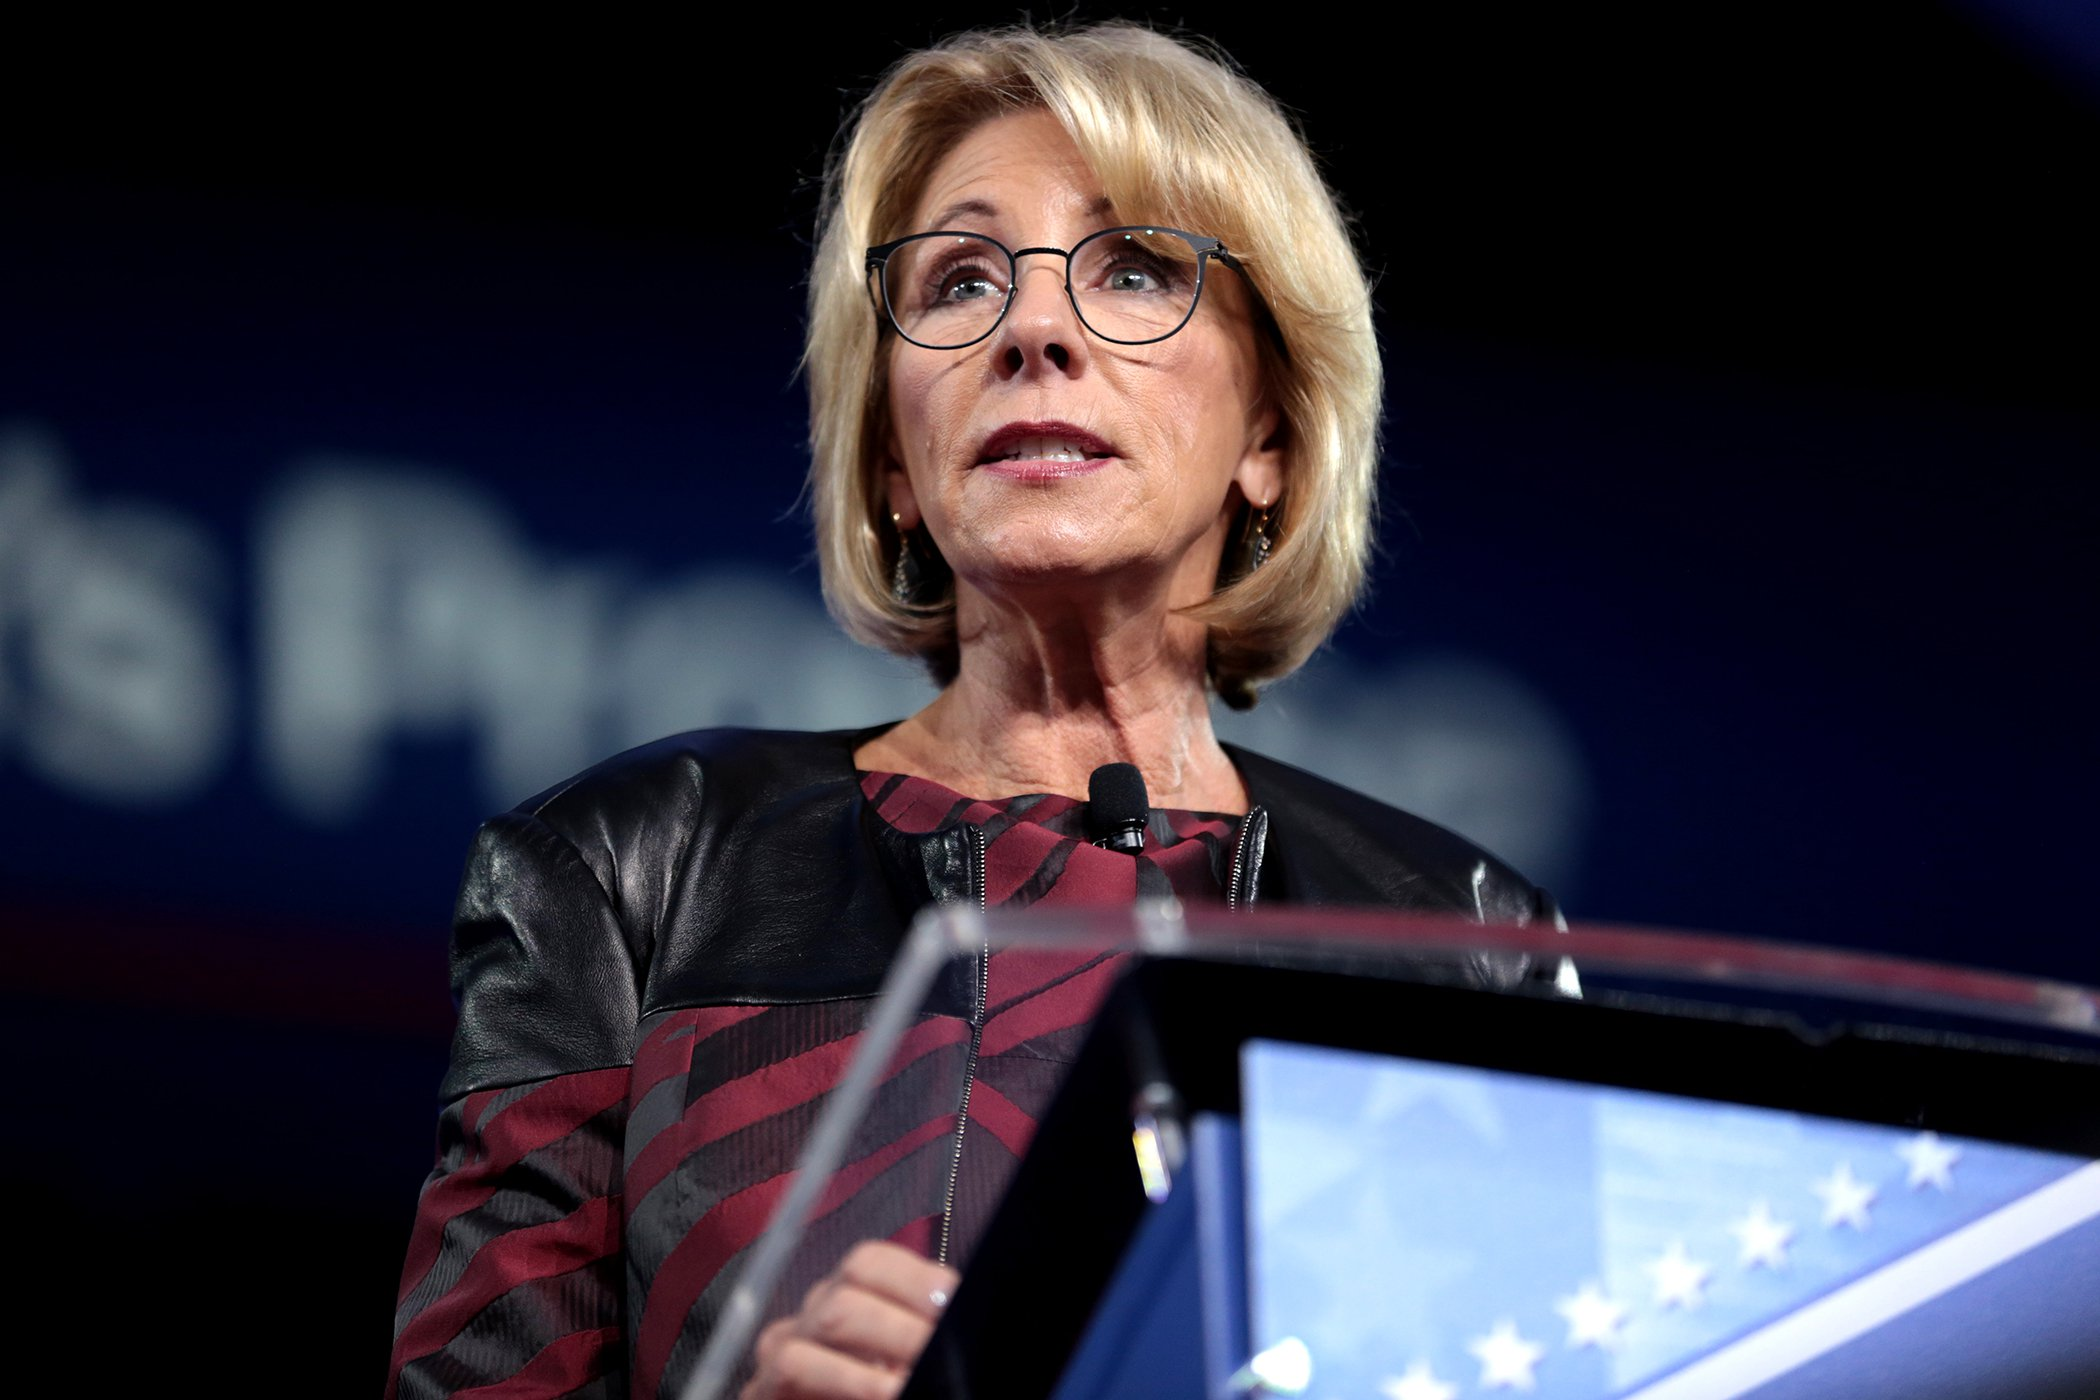 Betsy-Devos-Department-Of-Education-Title-IX.jpg